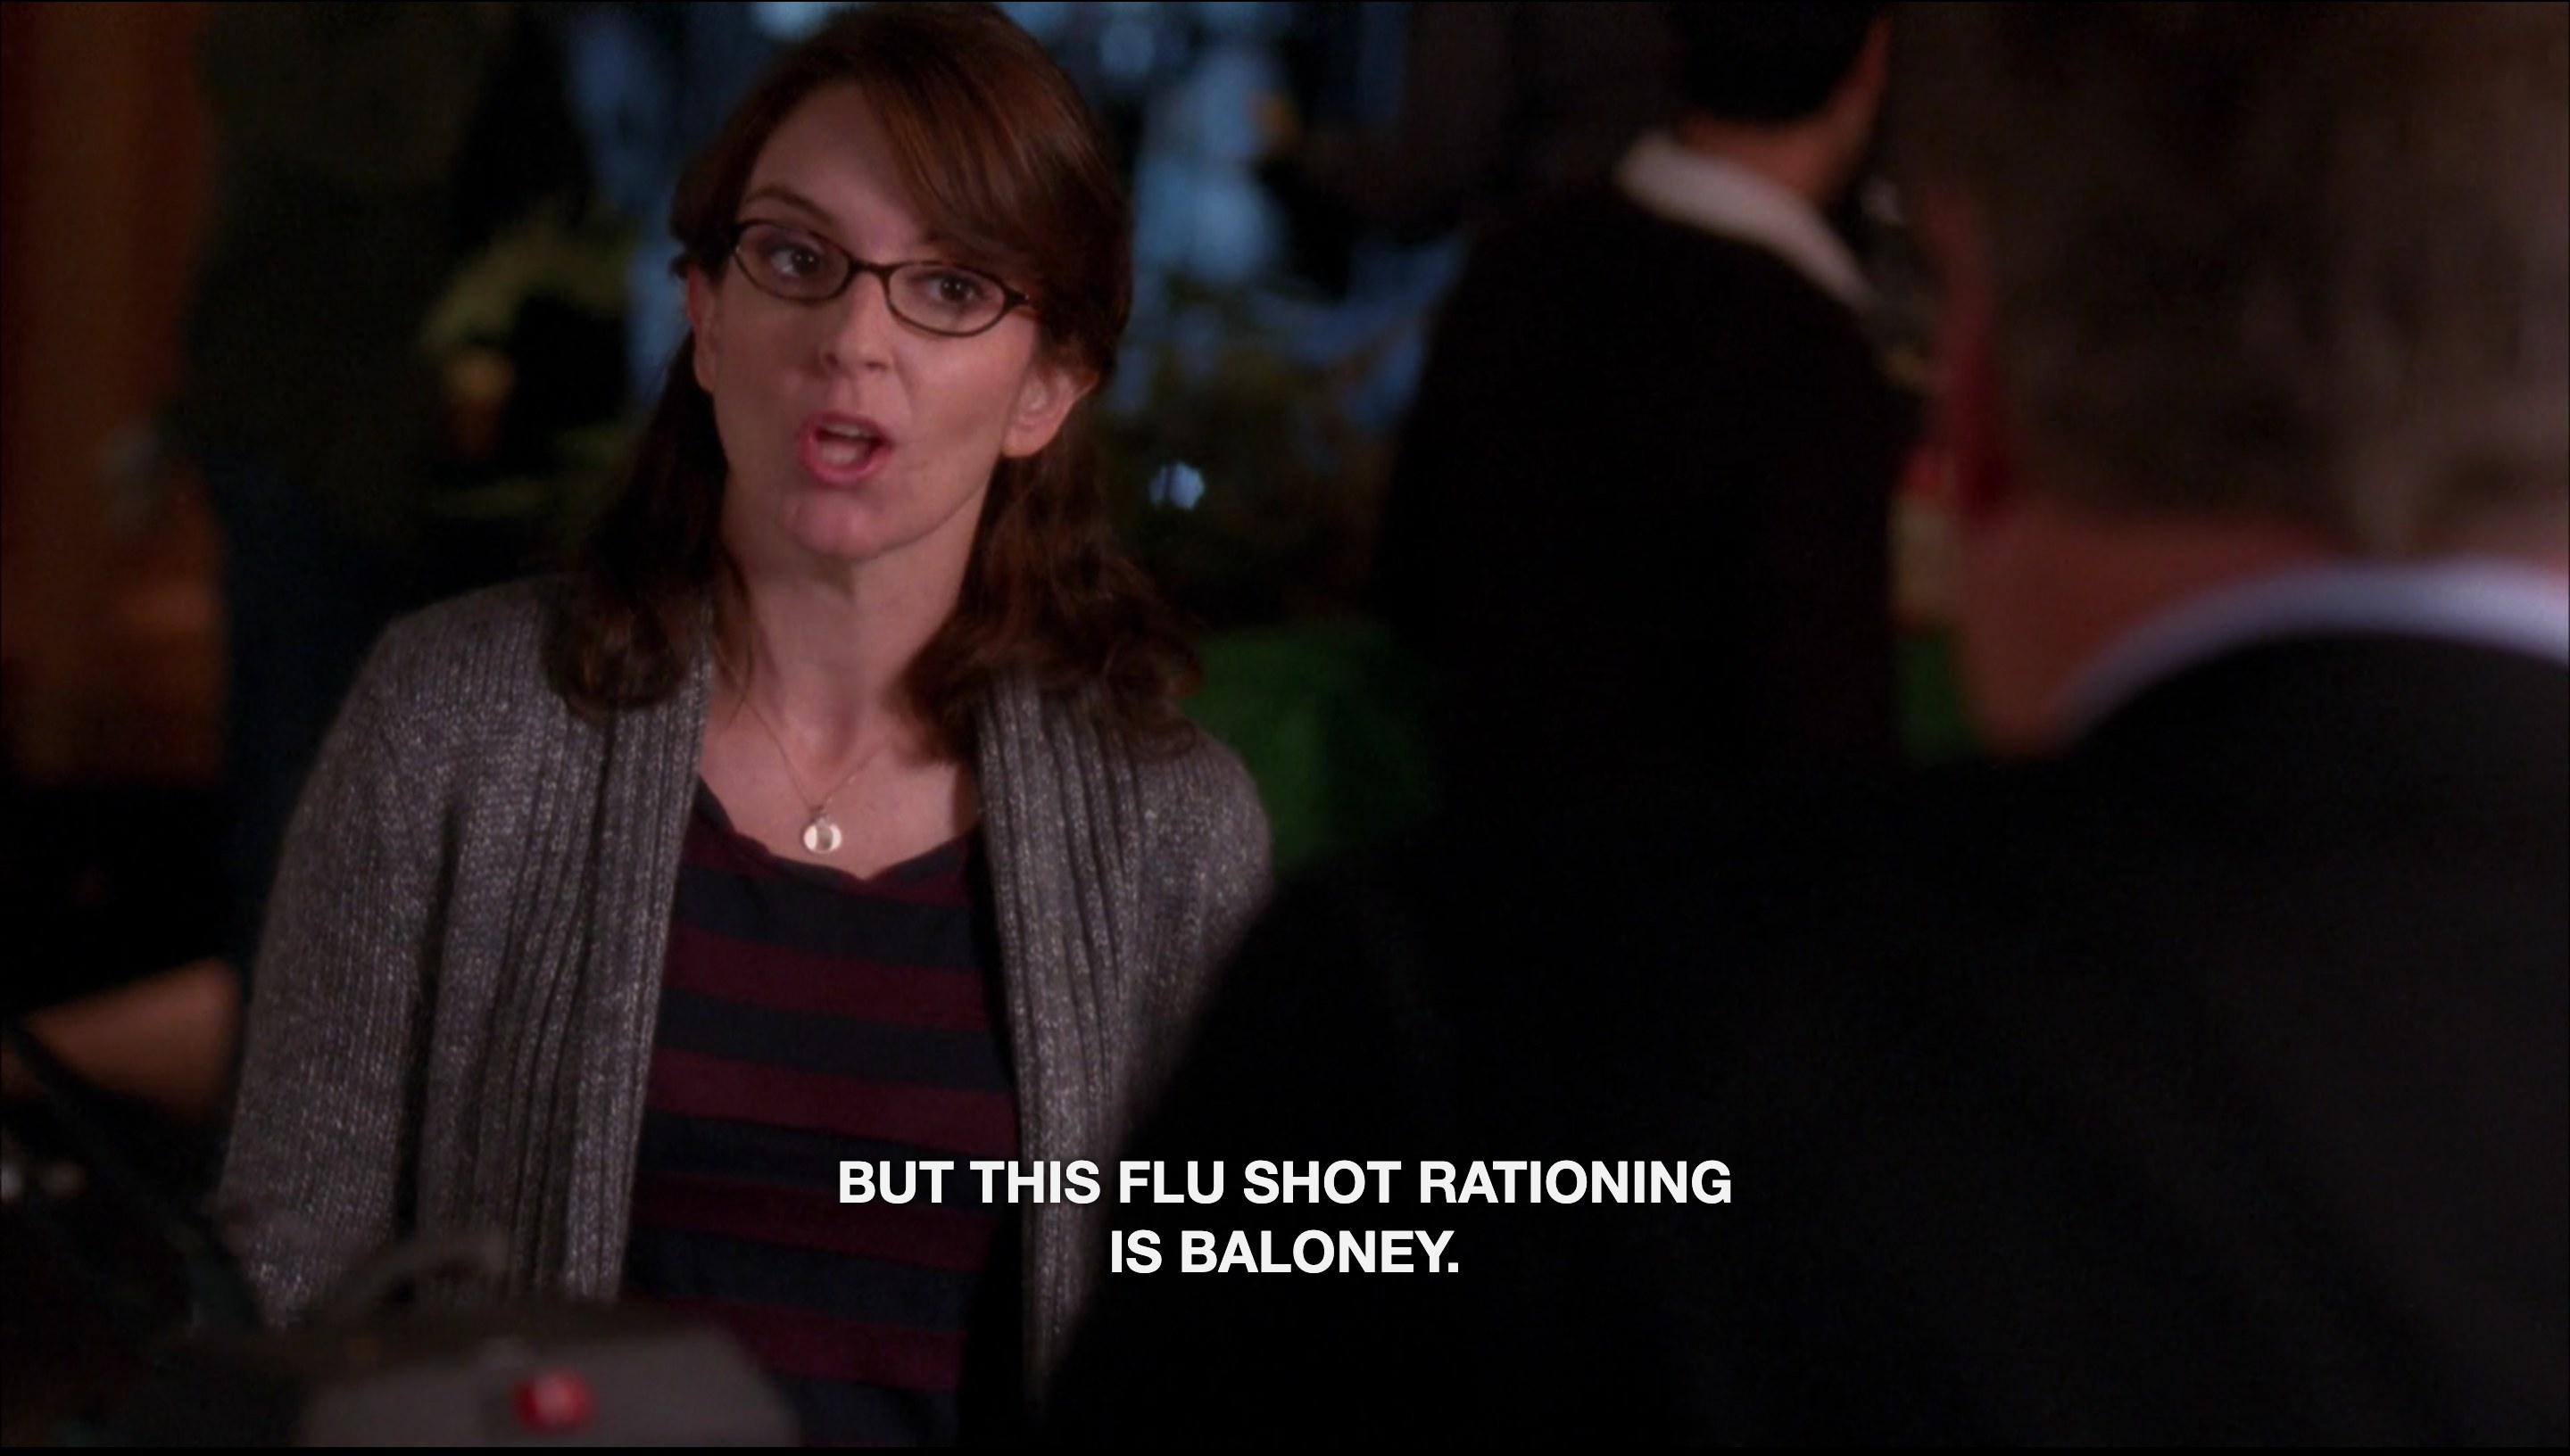 """A woman speaking with the caption text """"But this flu shot rationing is baloney"""""""